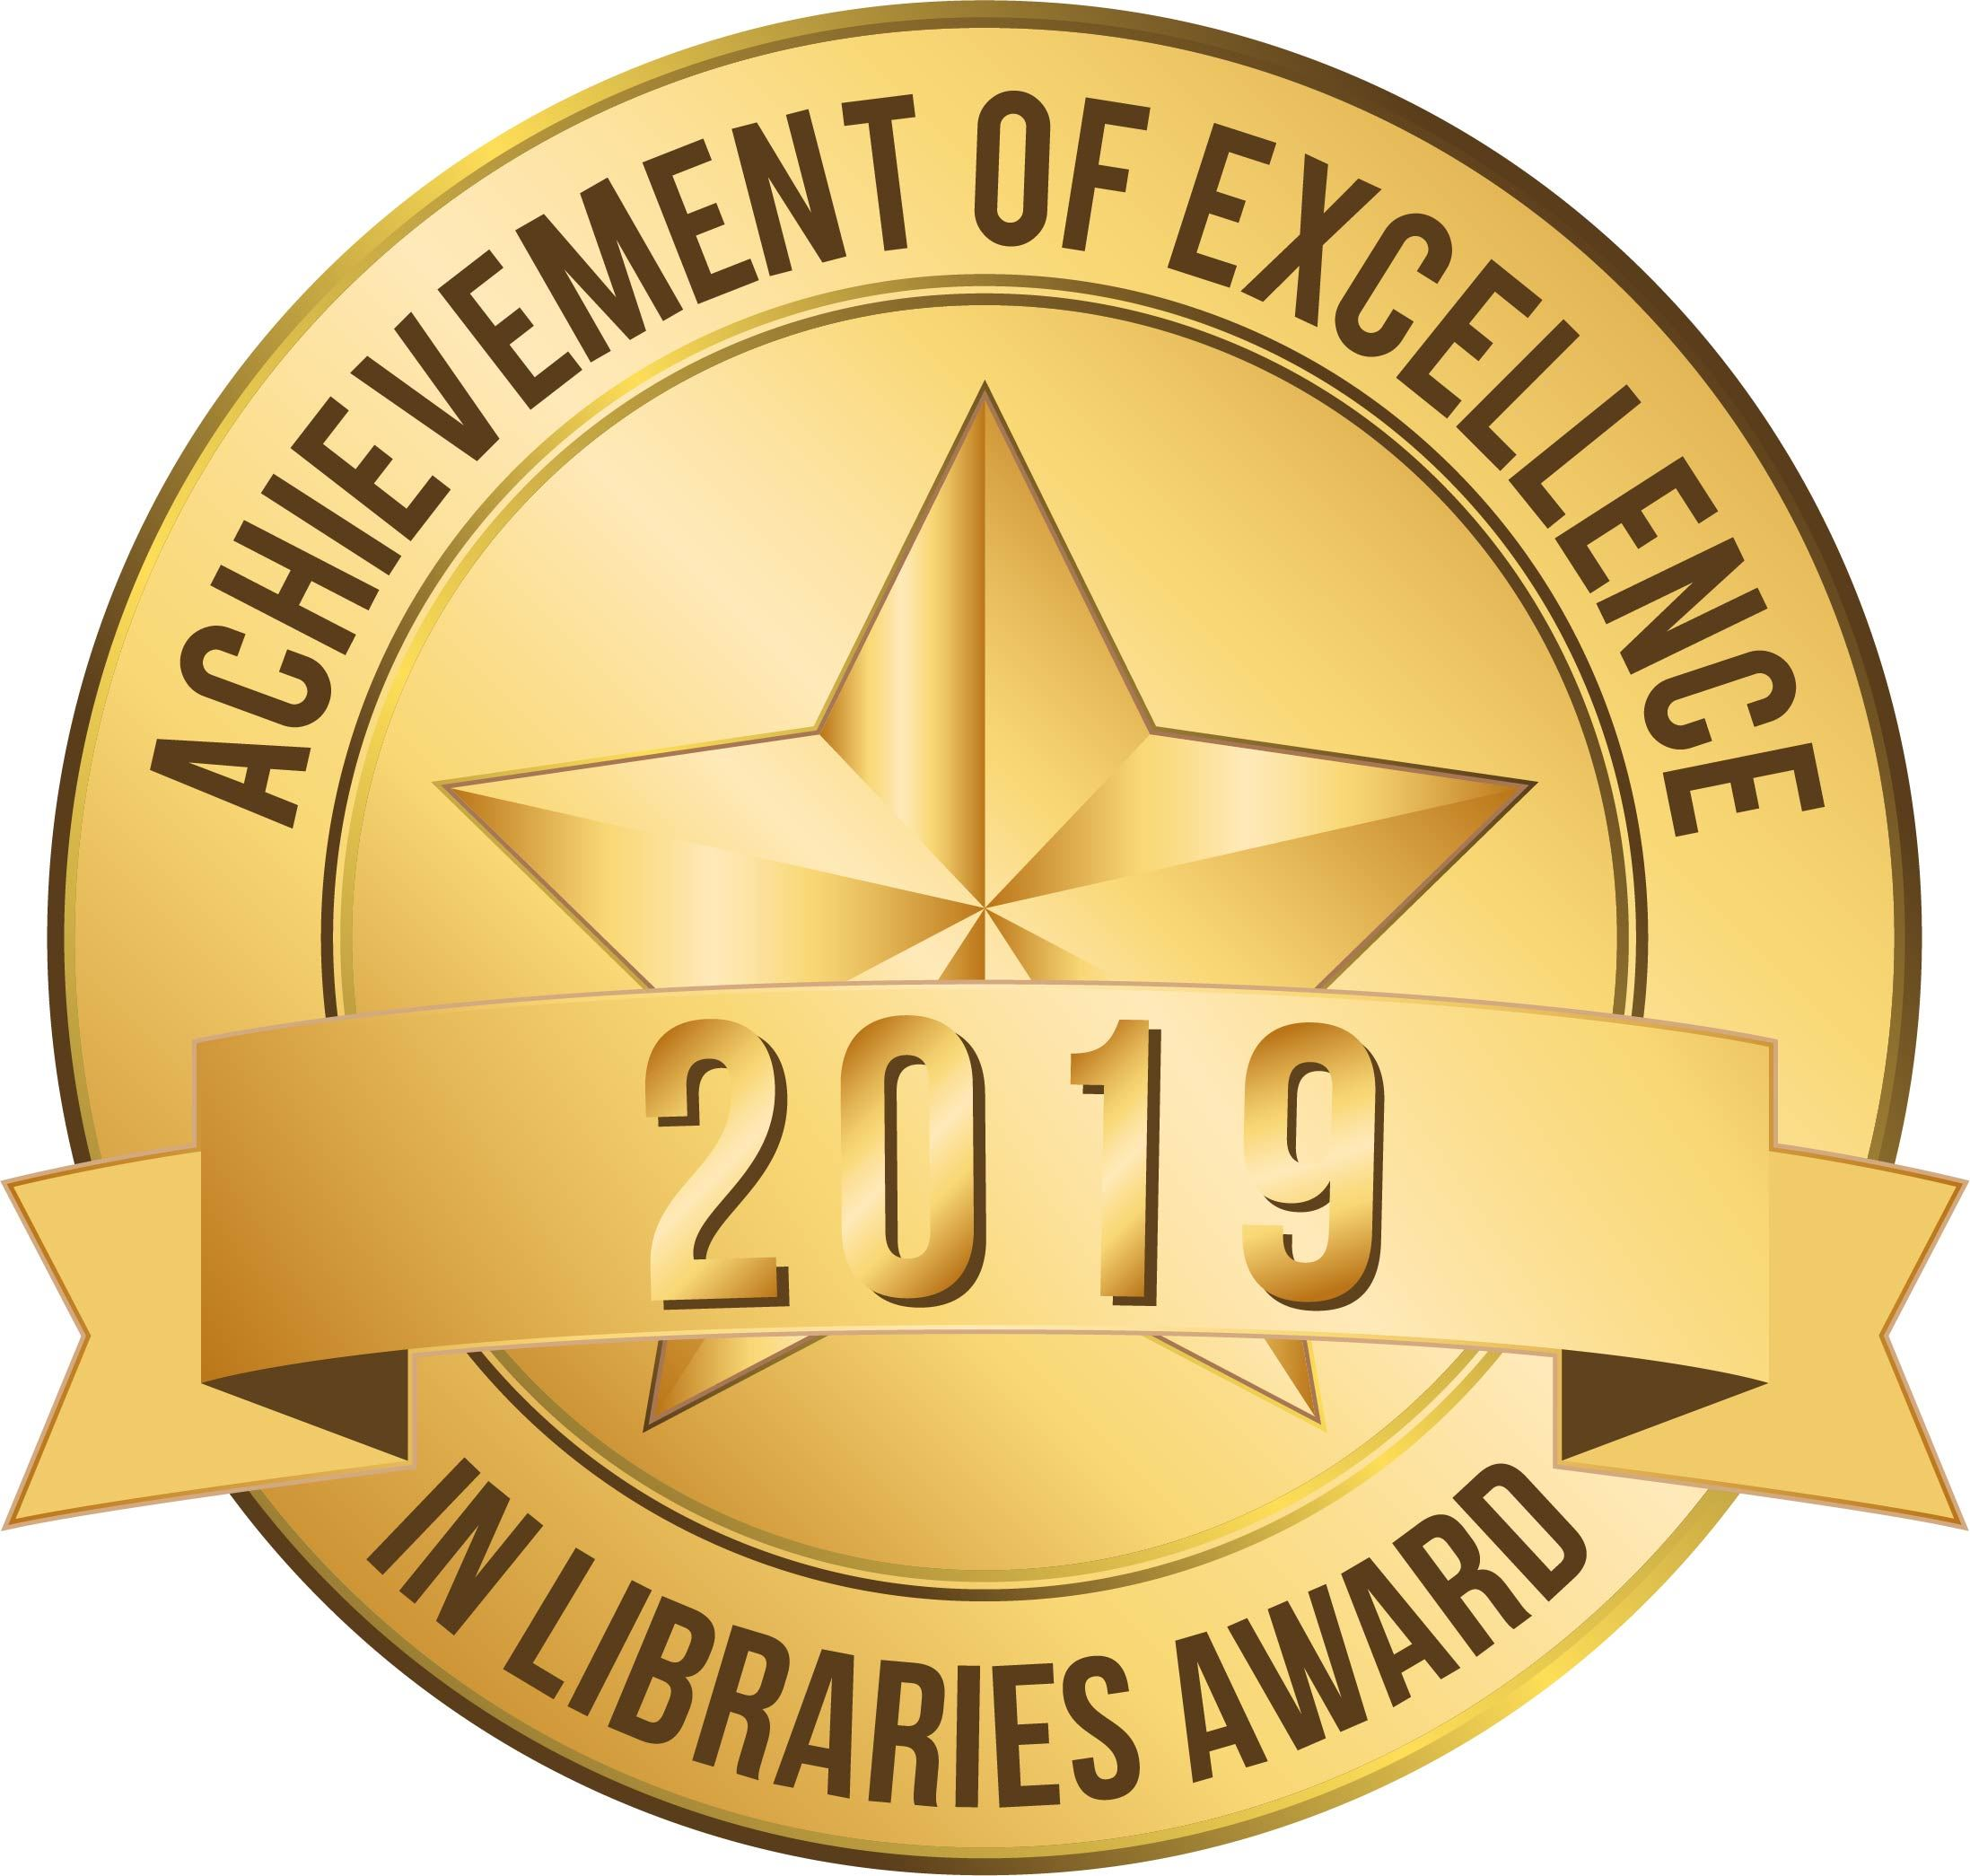 Achievement of Library Excellence Award